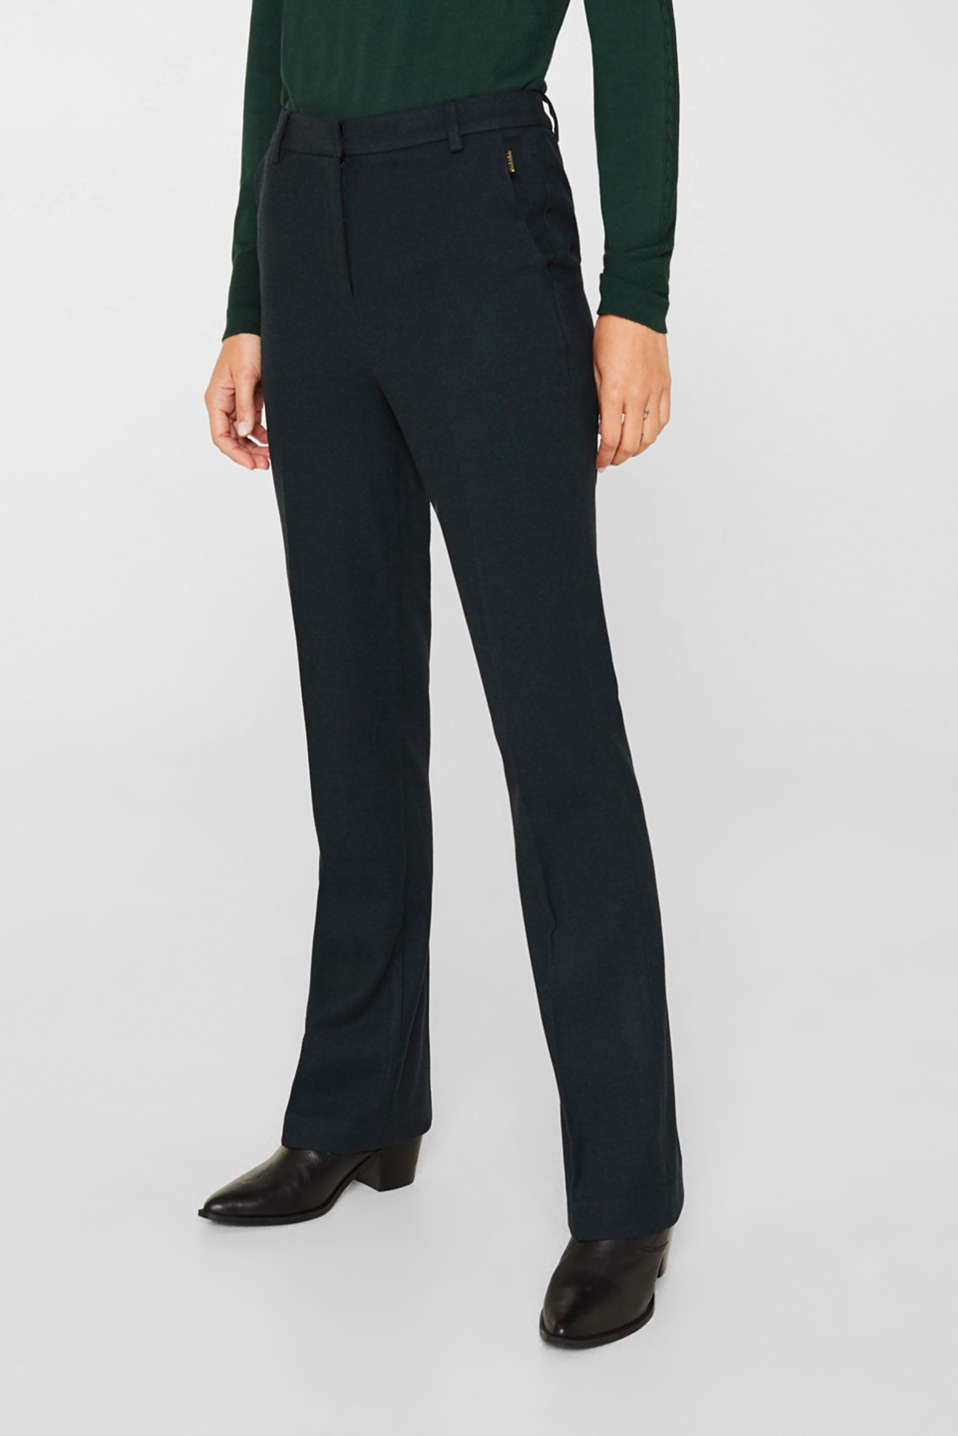 Flannel trousers with stretch for comfort, DARK TEAL GREEN, detail image number 6